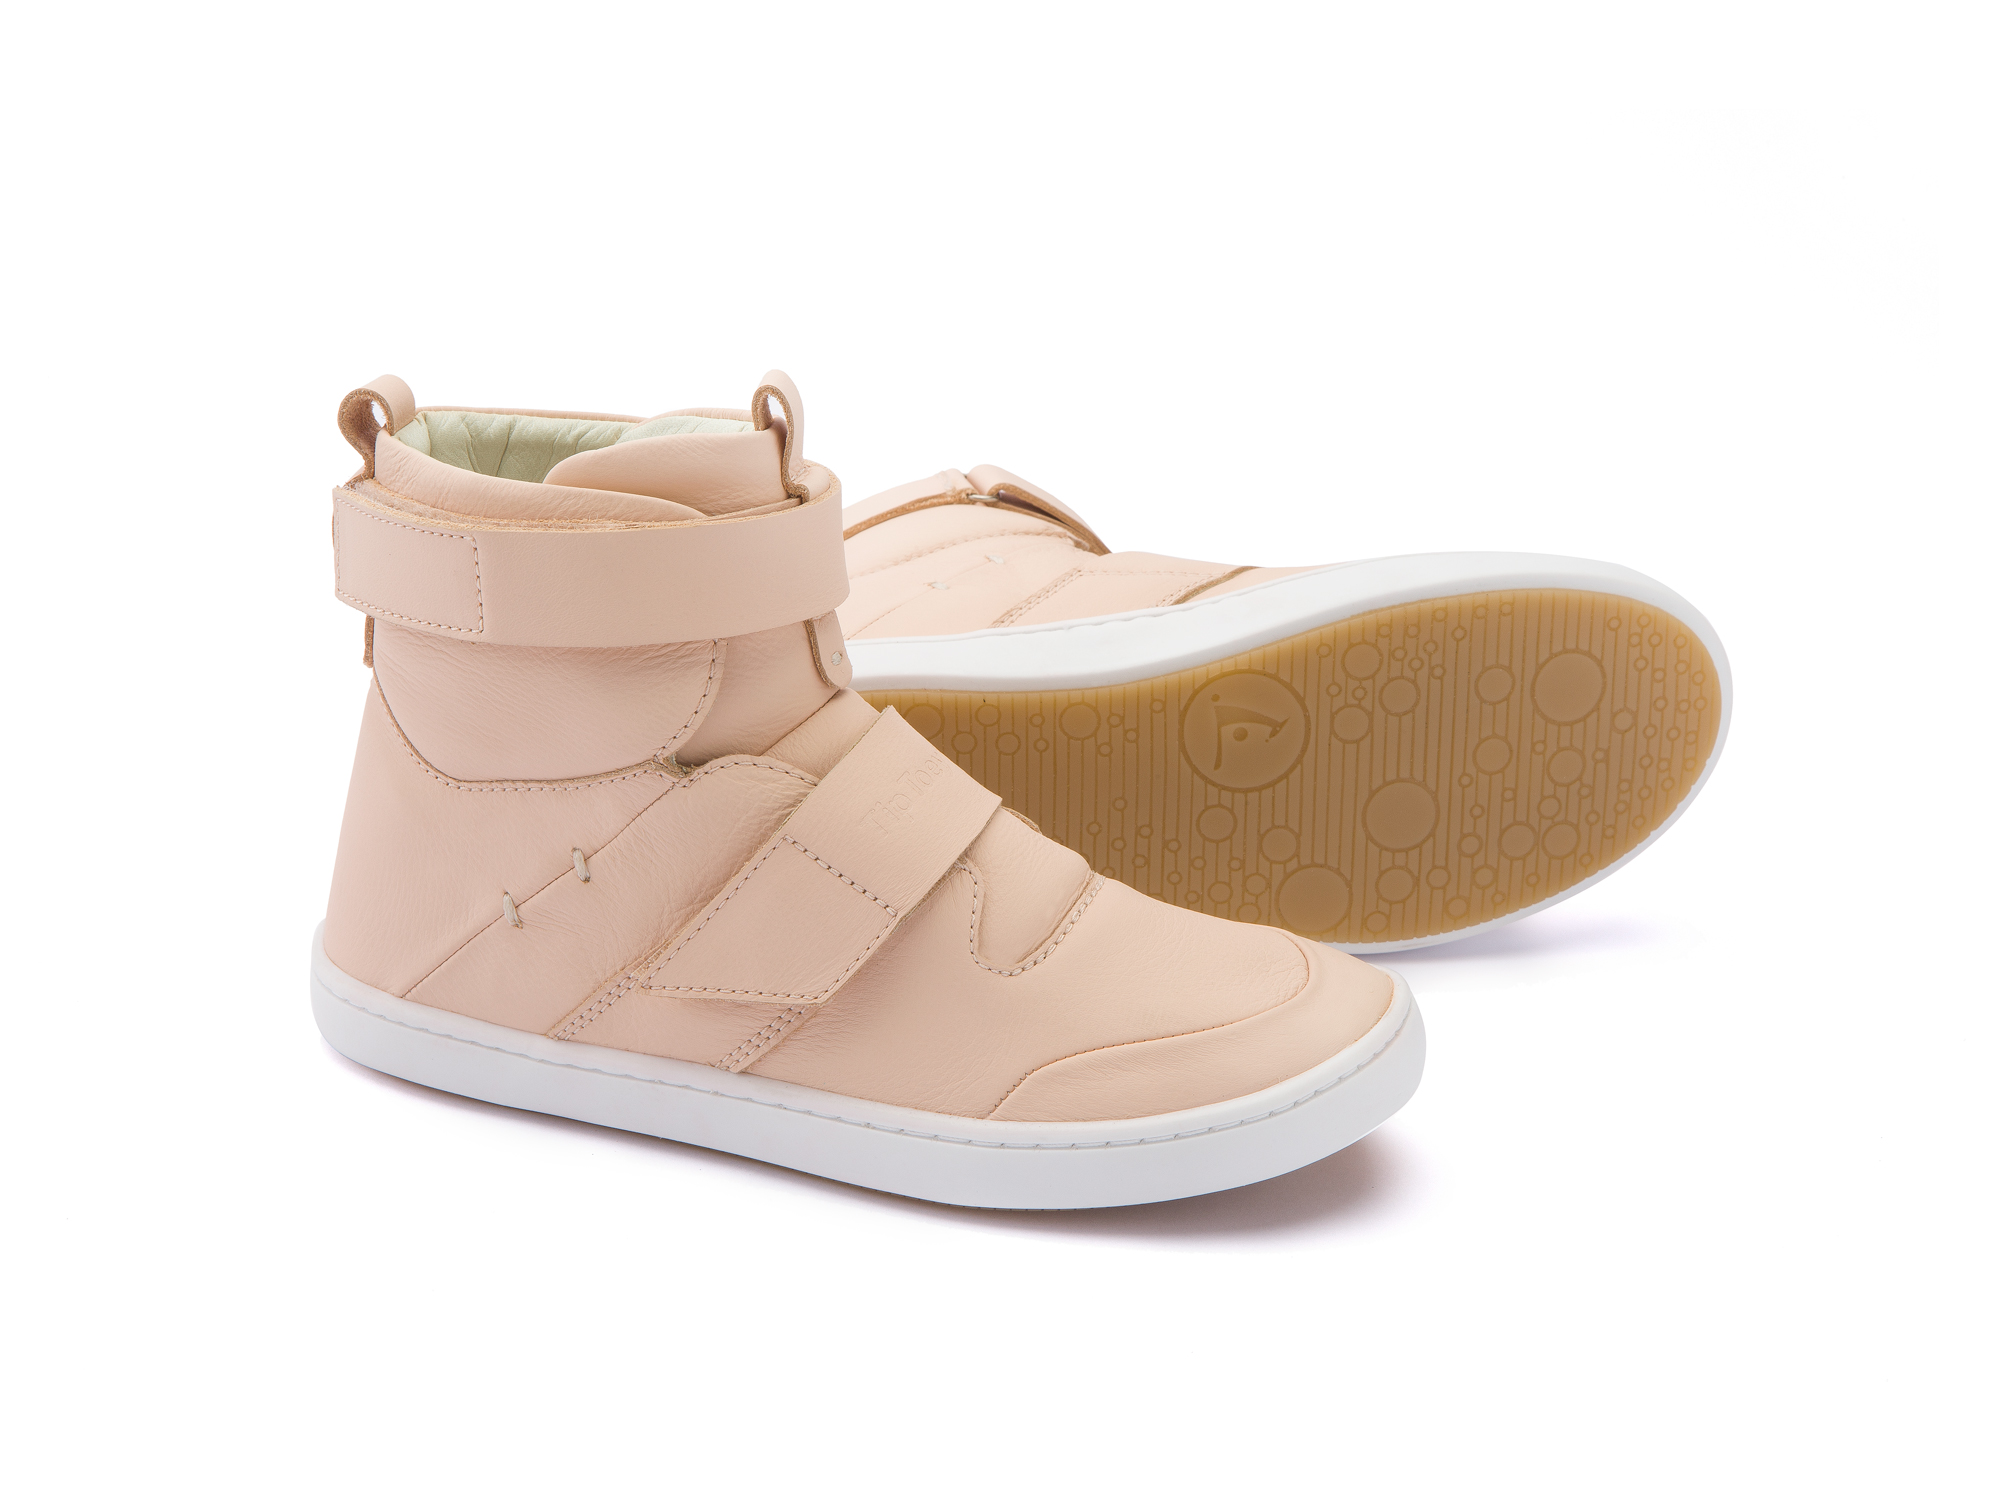 Bota Hoop Papaya Cream Junior 4 à 8 anos - 2